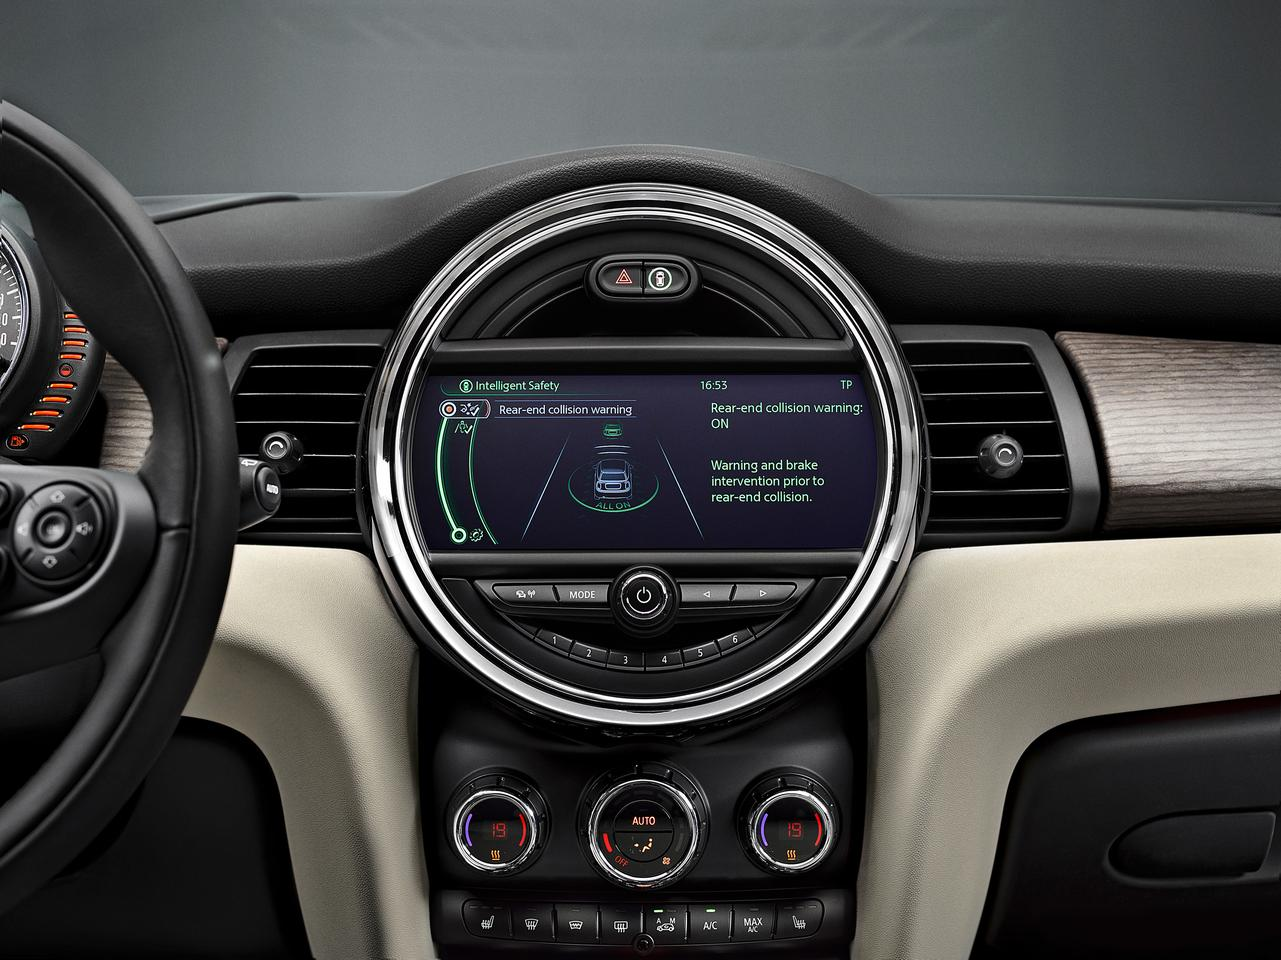 Rear-end collision warning with city braking function